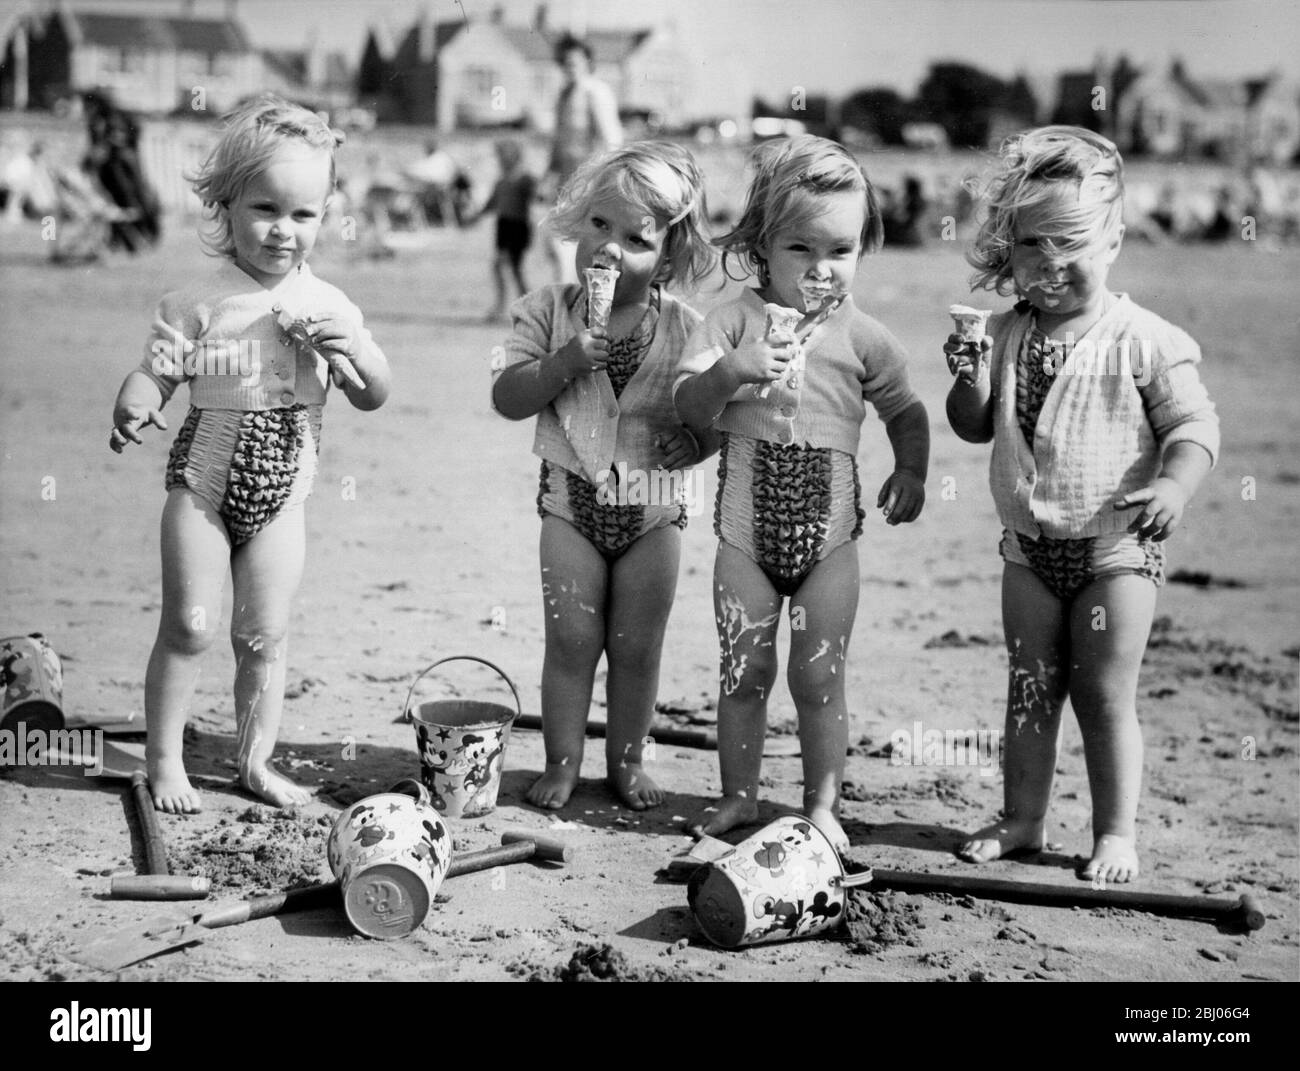 the-goods-quads-on-the-beach-at-weston-super-mare-with-ice-cream-cornets-from-left-to-right-bridget-jennifer-elizabeth-and-frances-the-quads-are-two-years-old-6th-august-1950-2BJ06G4.jpg